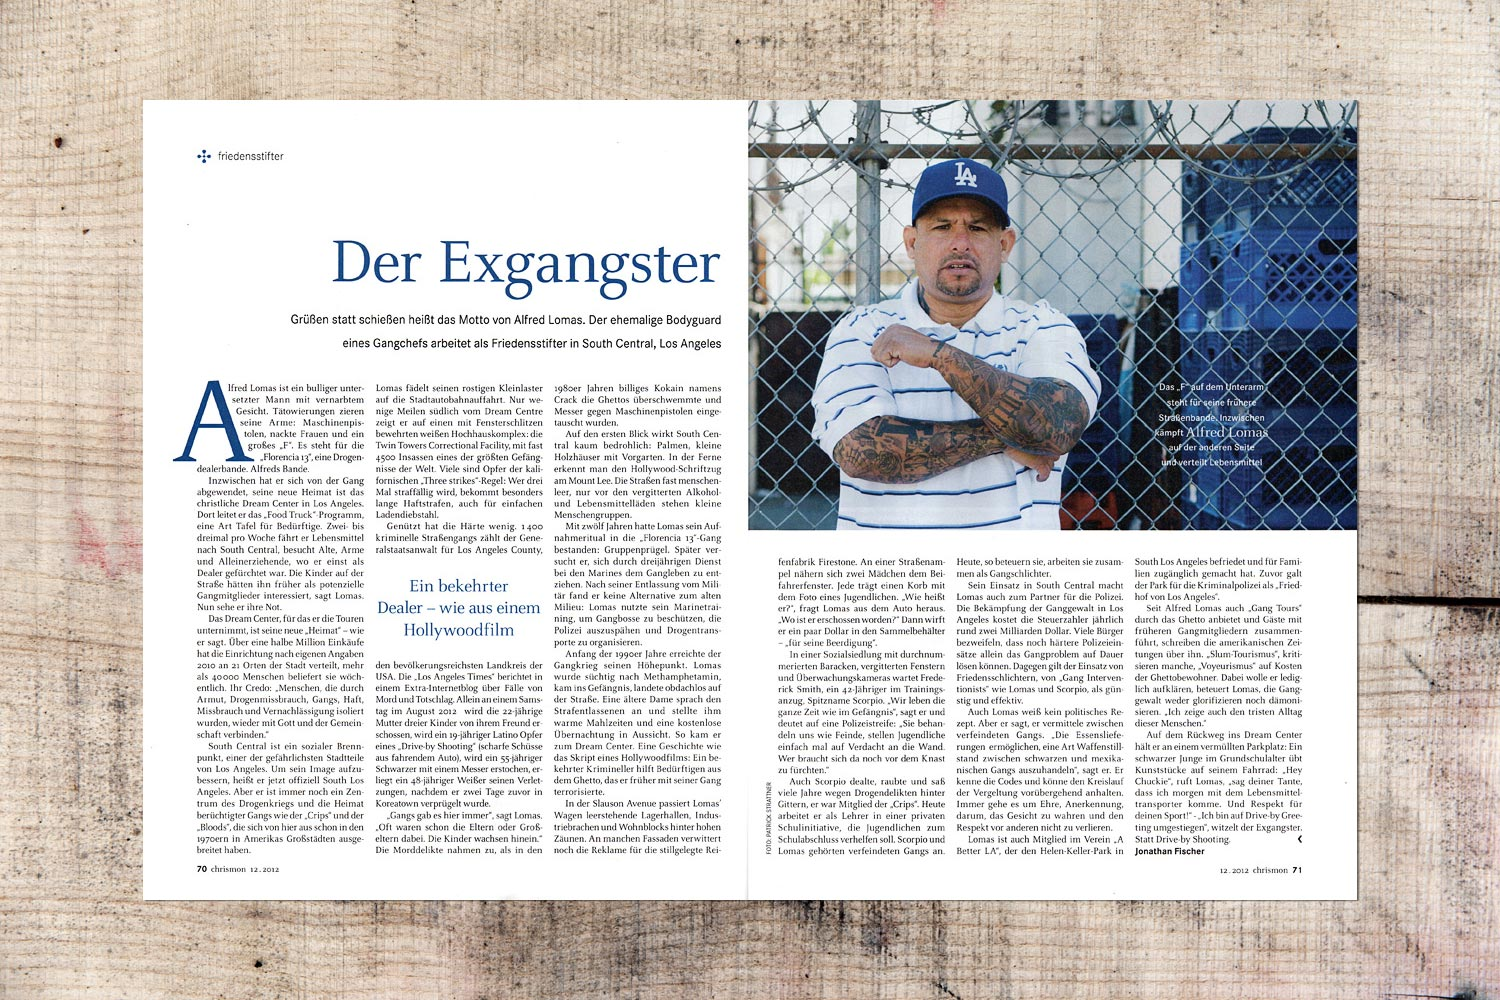 PATRICK STRATTNER PHOTOGRAPHY | TEAR SHEETS | The ex-gangster / Chrismon